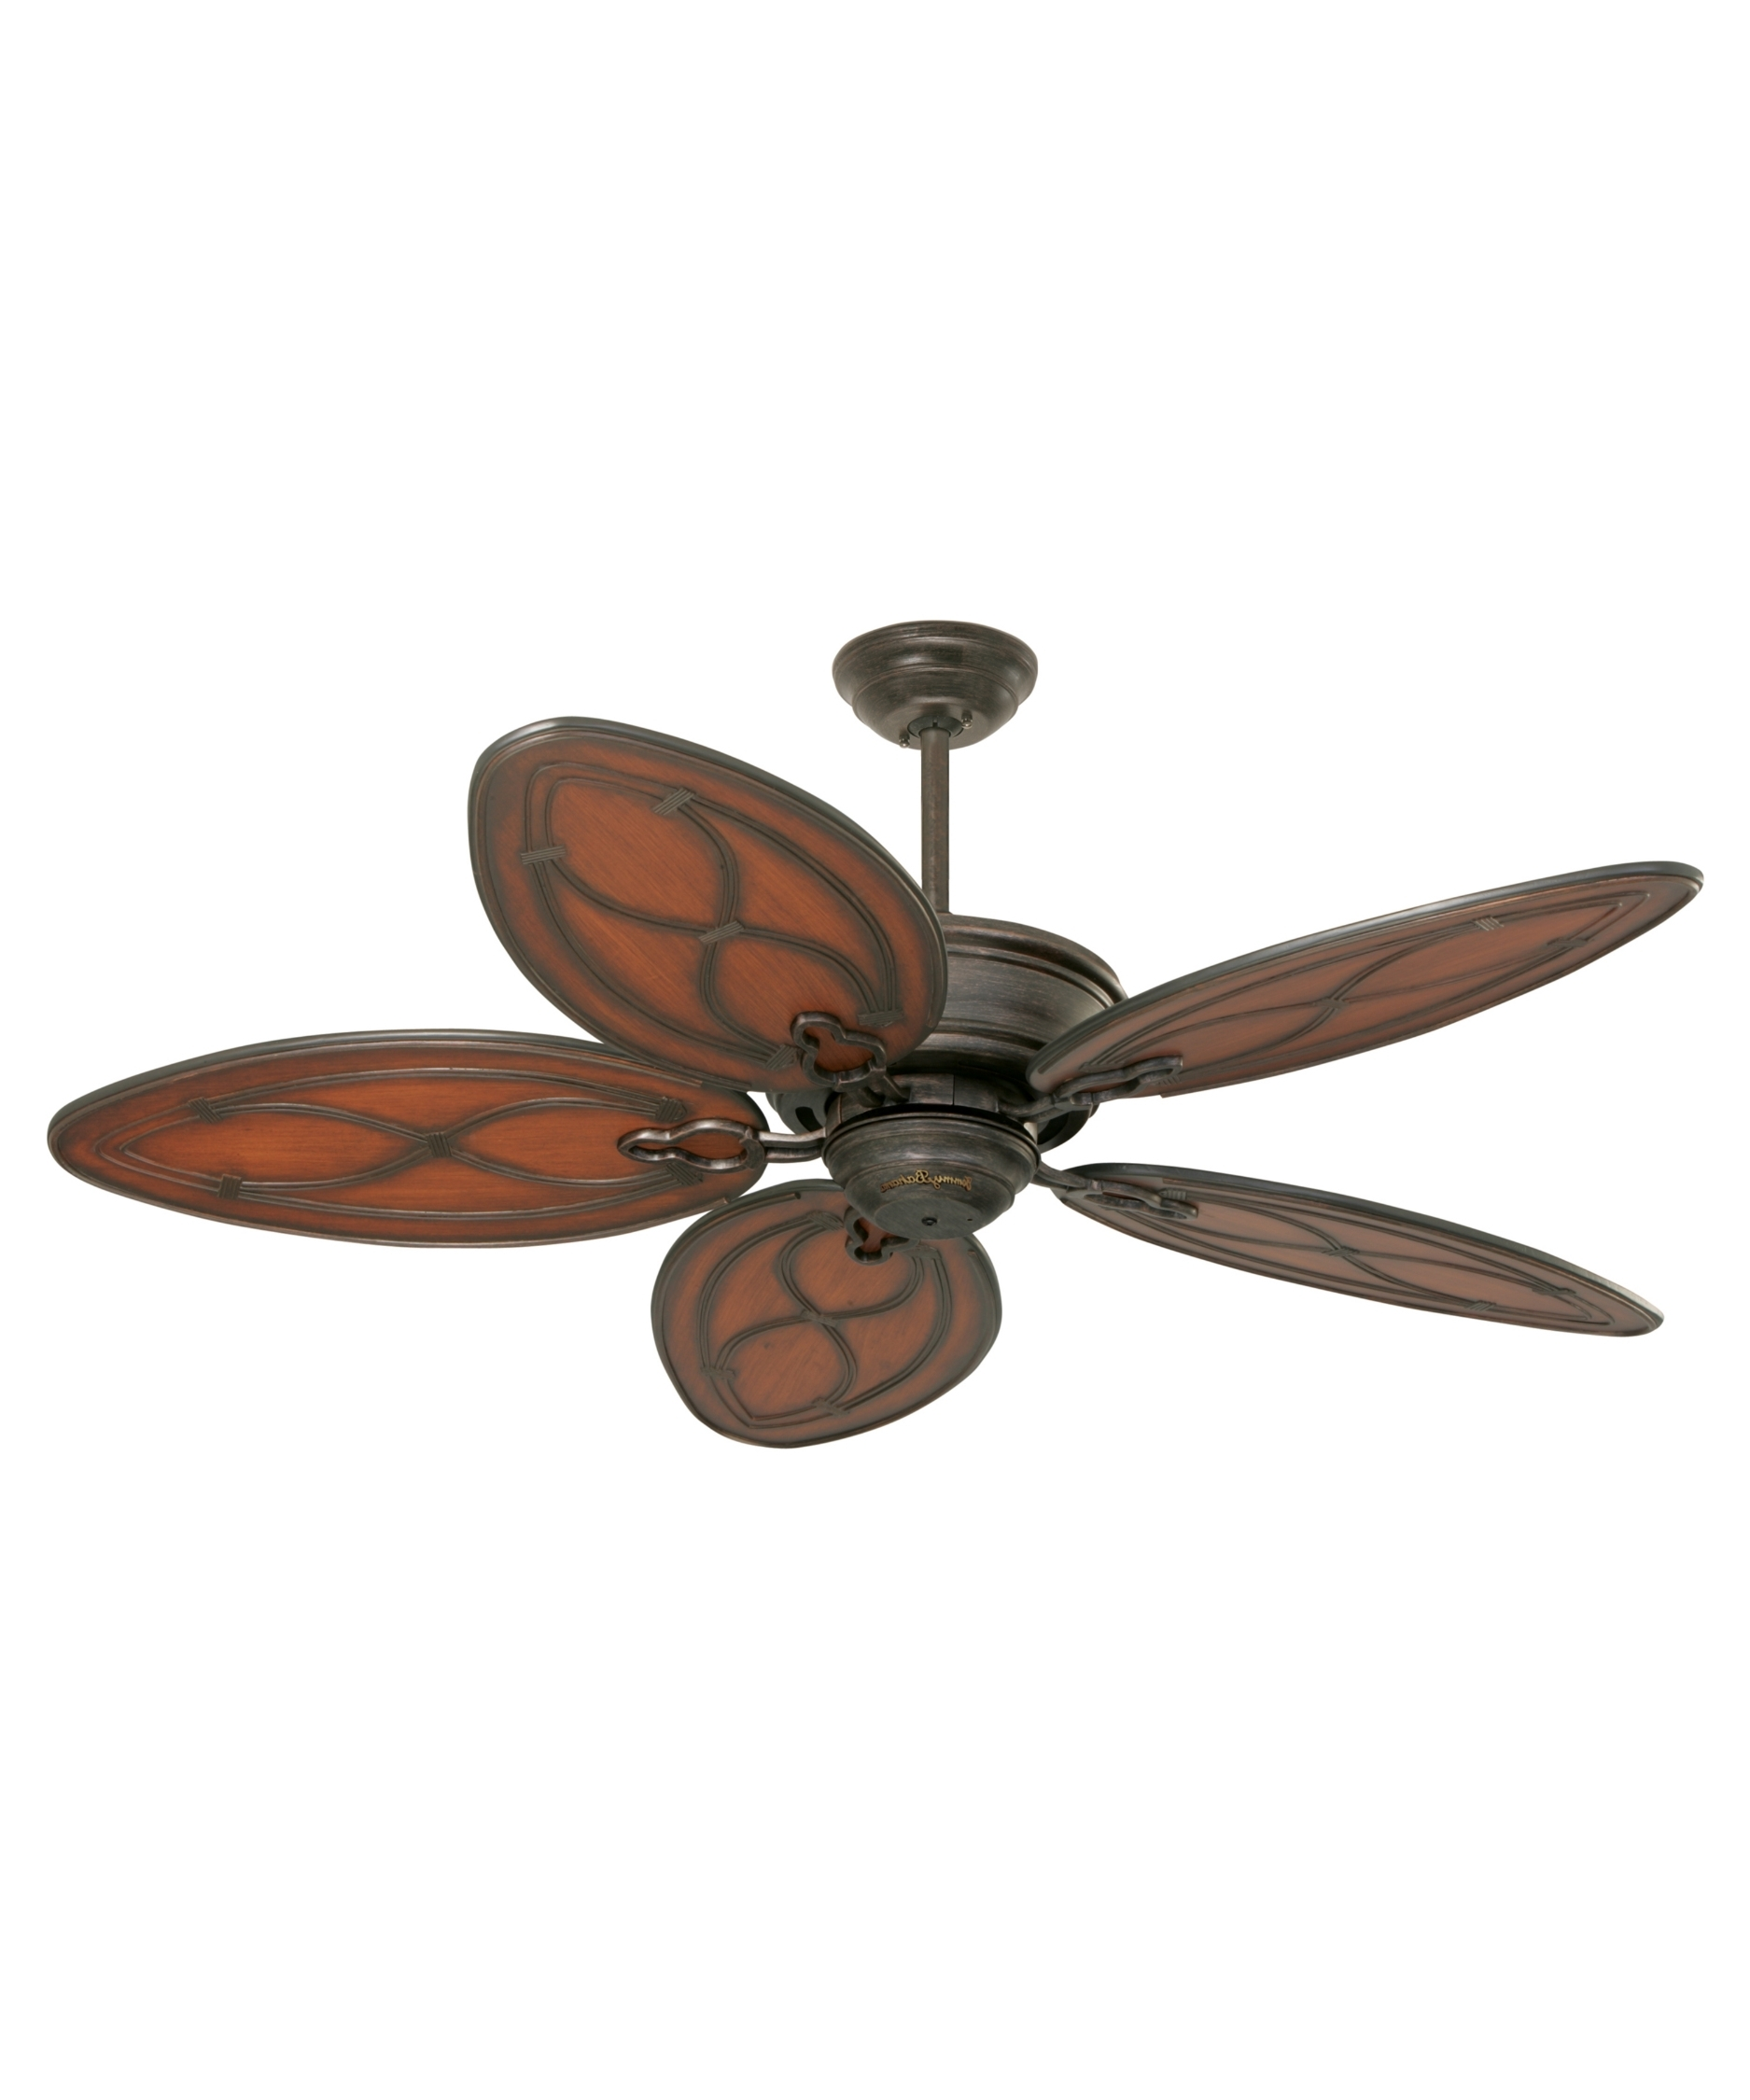 Ceiling Lights : Fetching Large Outdoor Ceiling Fans With Lights Intended For Trendy Outdoor Ceiling Fans With Motion Light (View 1 of 20)